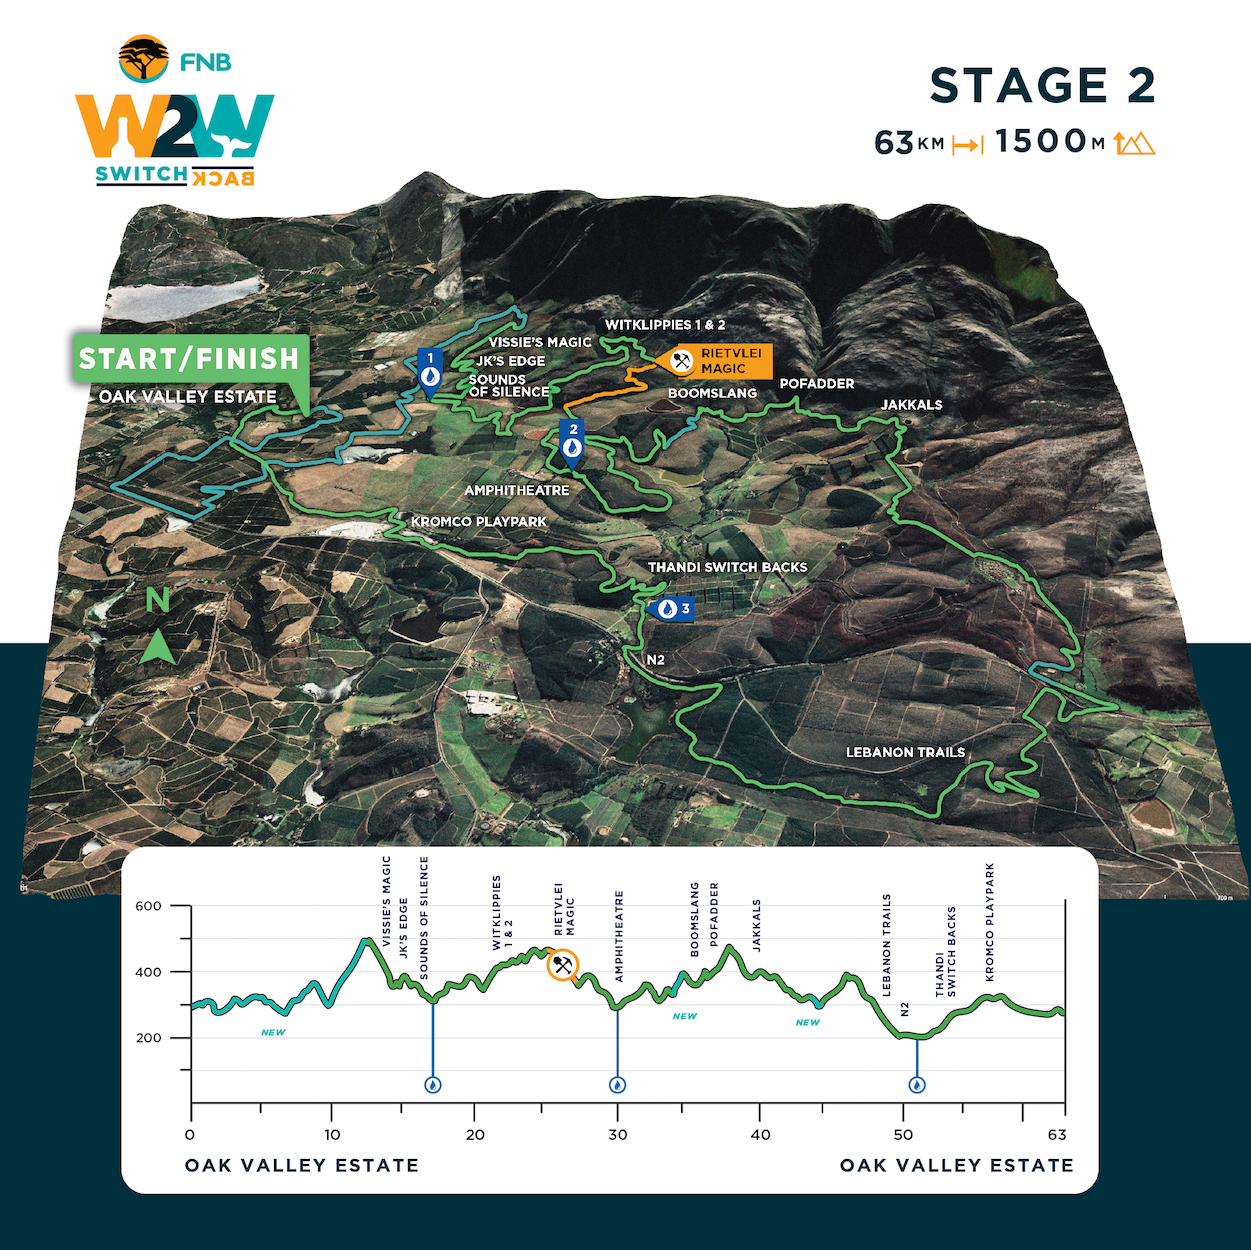 Route and profile map for the 2020 Wines2whales Switchback mountain bike stage race event.